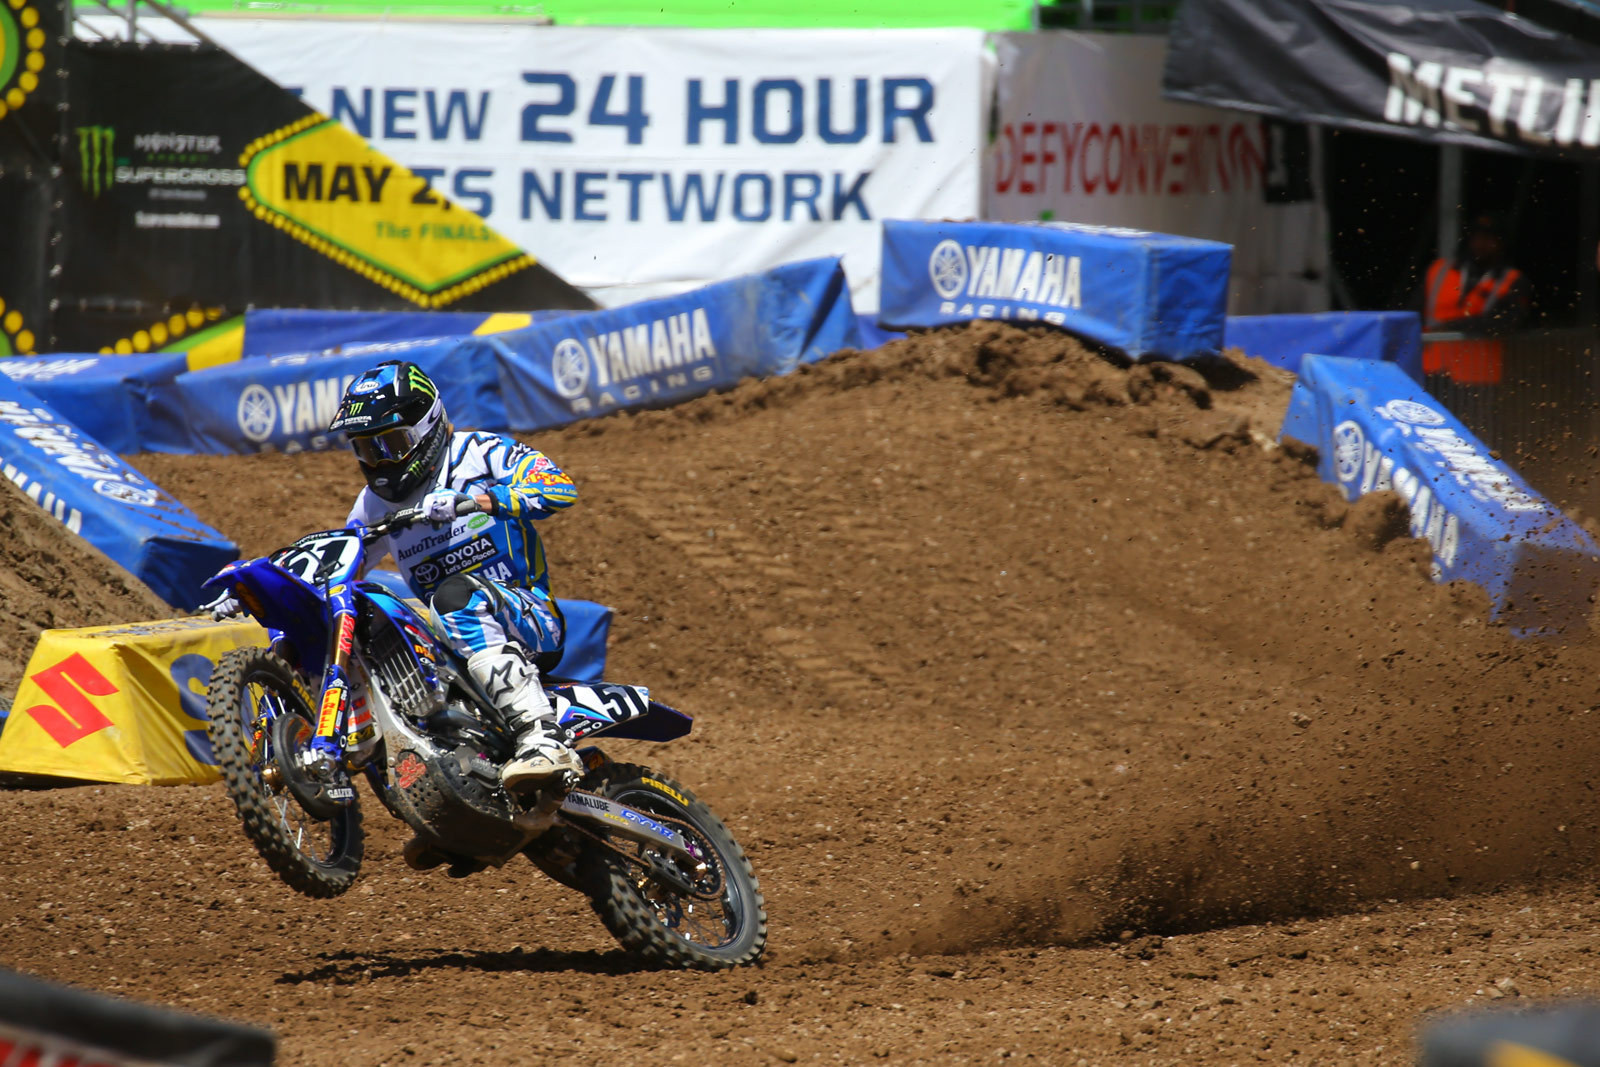 2015 East Rutherford Supercross